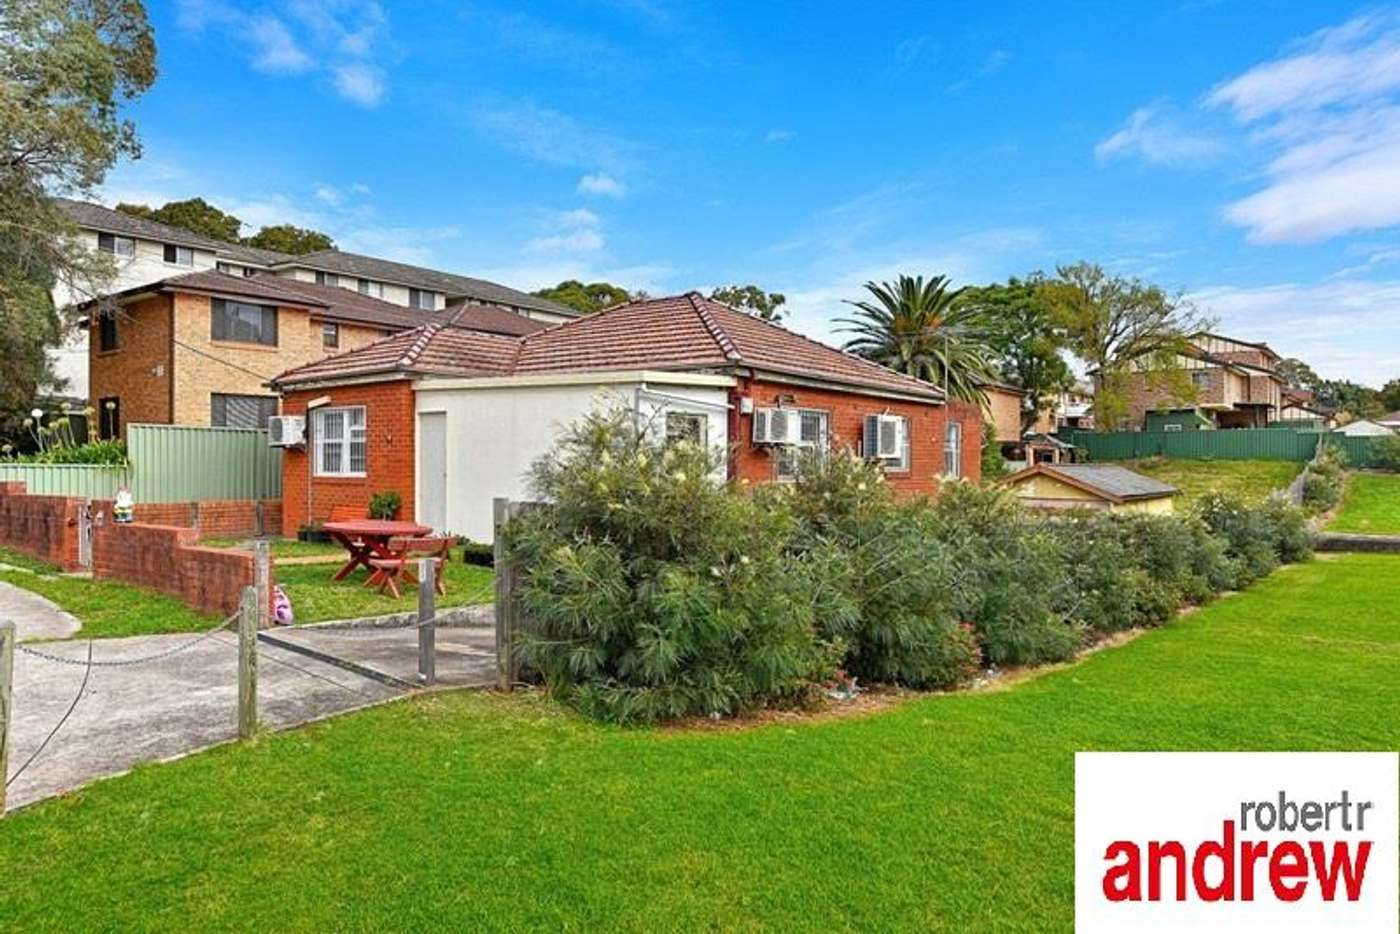 Main view of Homely house listing, 68 Fourth Avenue, Campsie NSW 2194